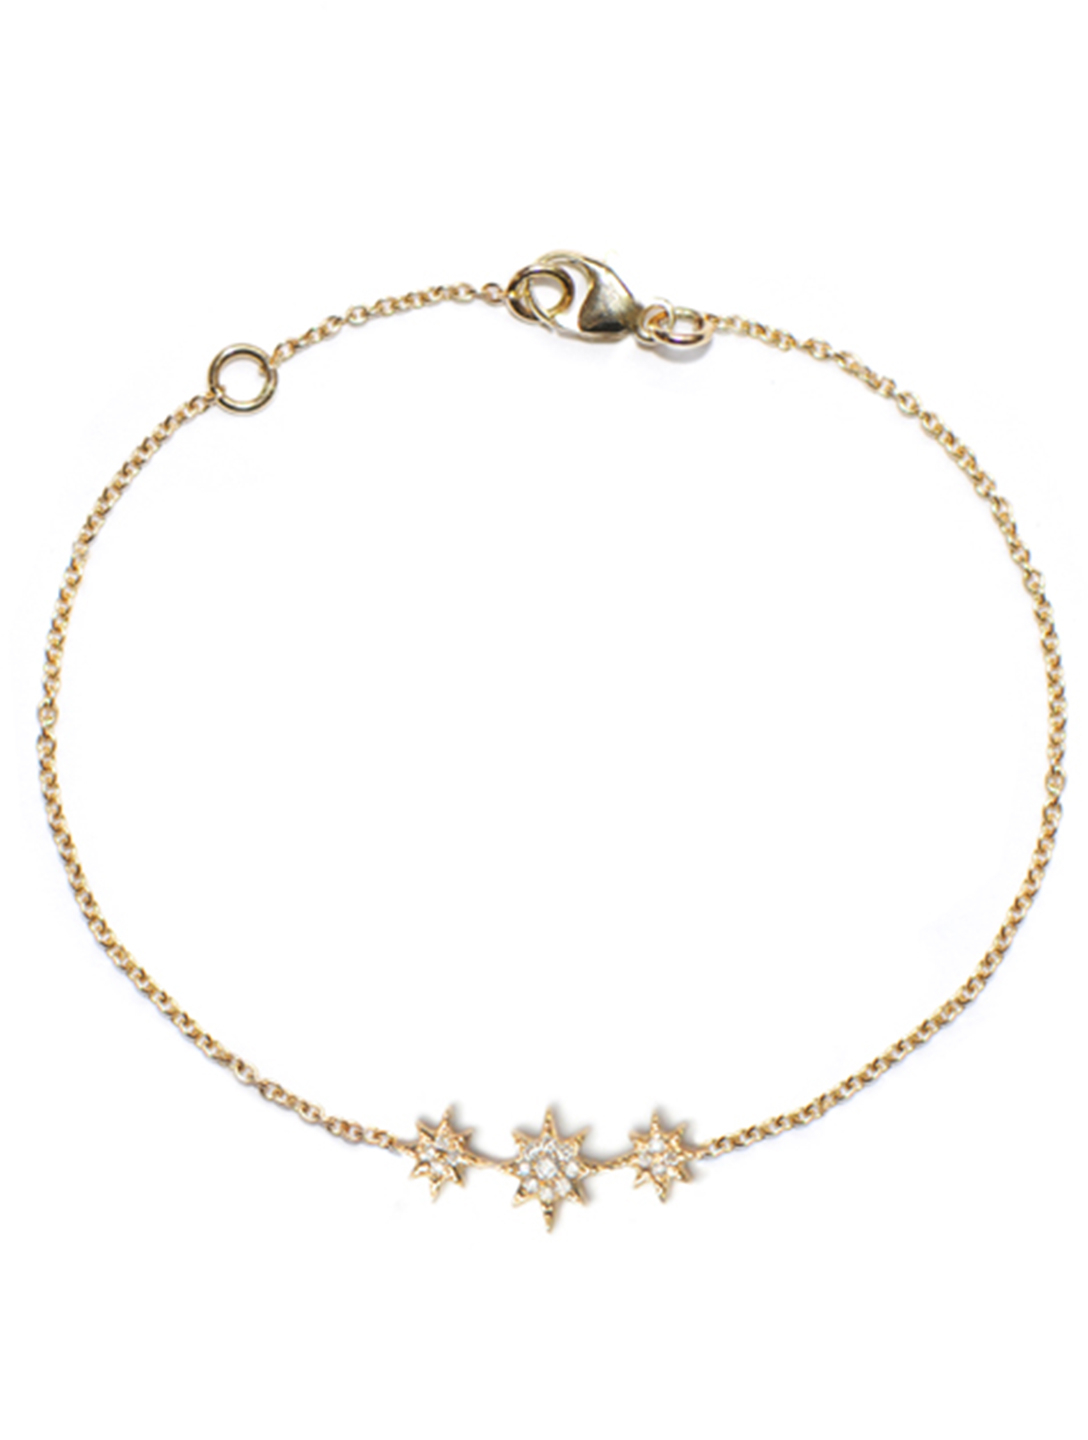 ANZIE Aztec 14K Gold North Star Mini Bar Bracelet With Diamonds Women's Silver